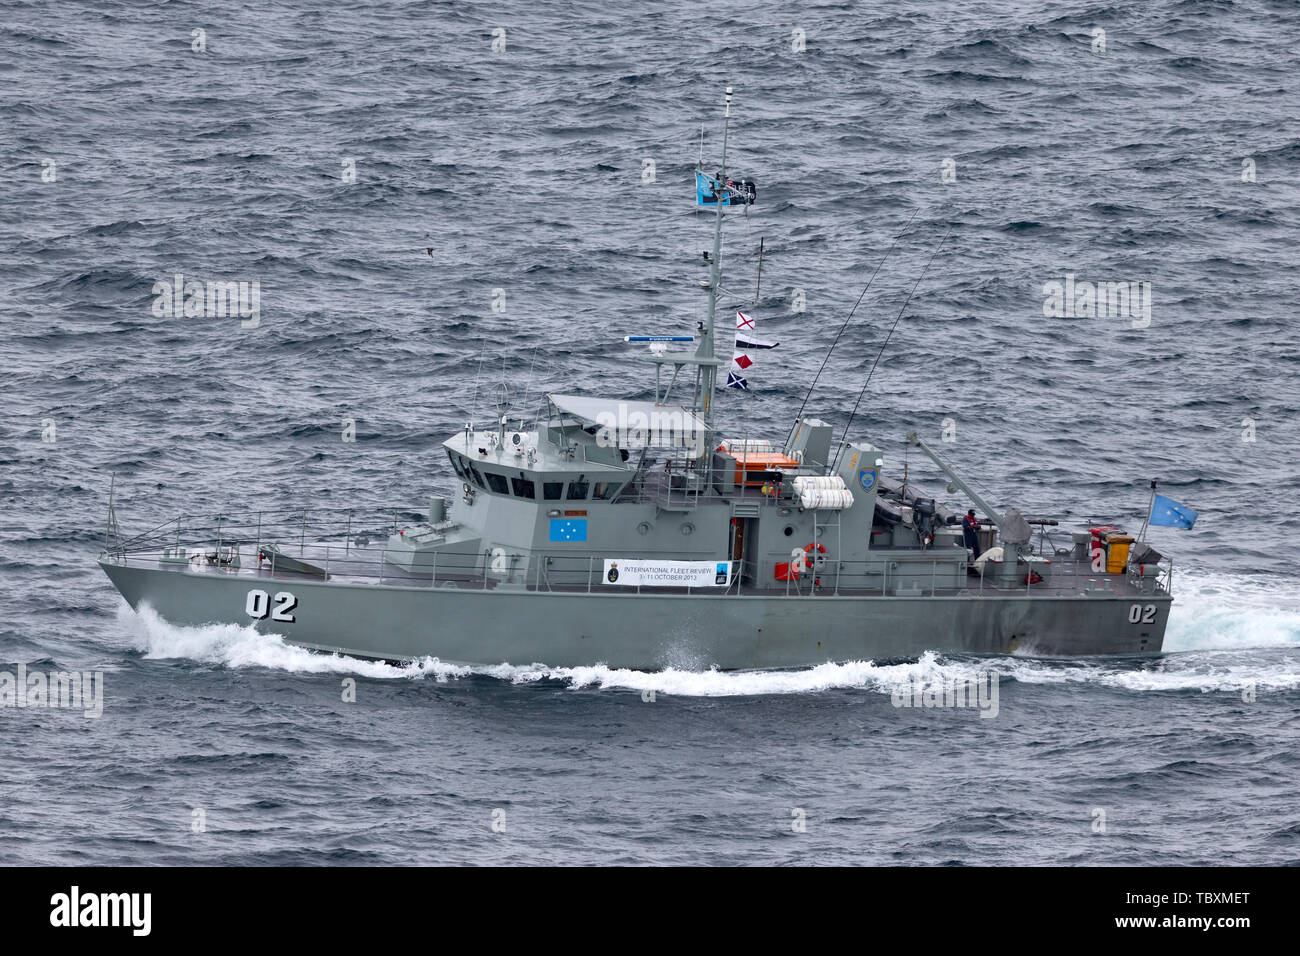 Pacific Forum Class patrol boat FSS Micronesia (FSM02) from the Micronesian Government sailing out of Sydney Harbor. - Stock Image